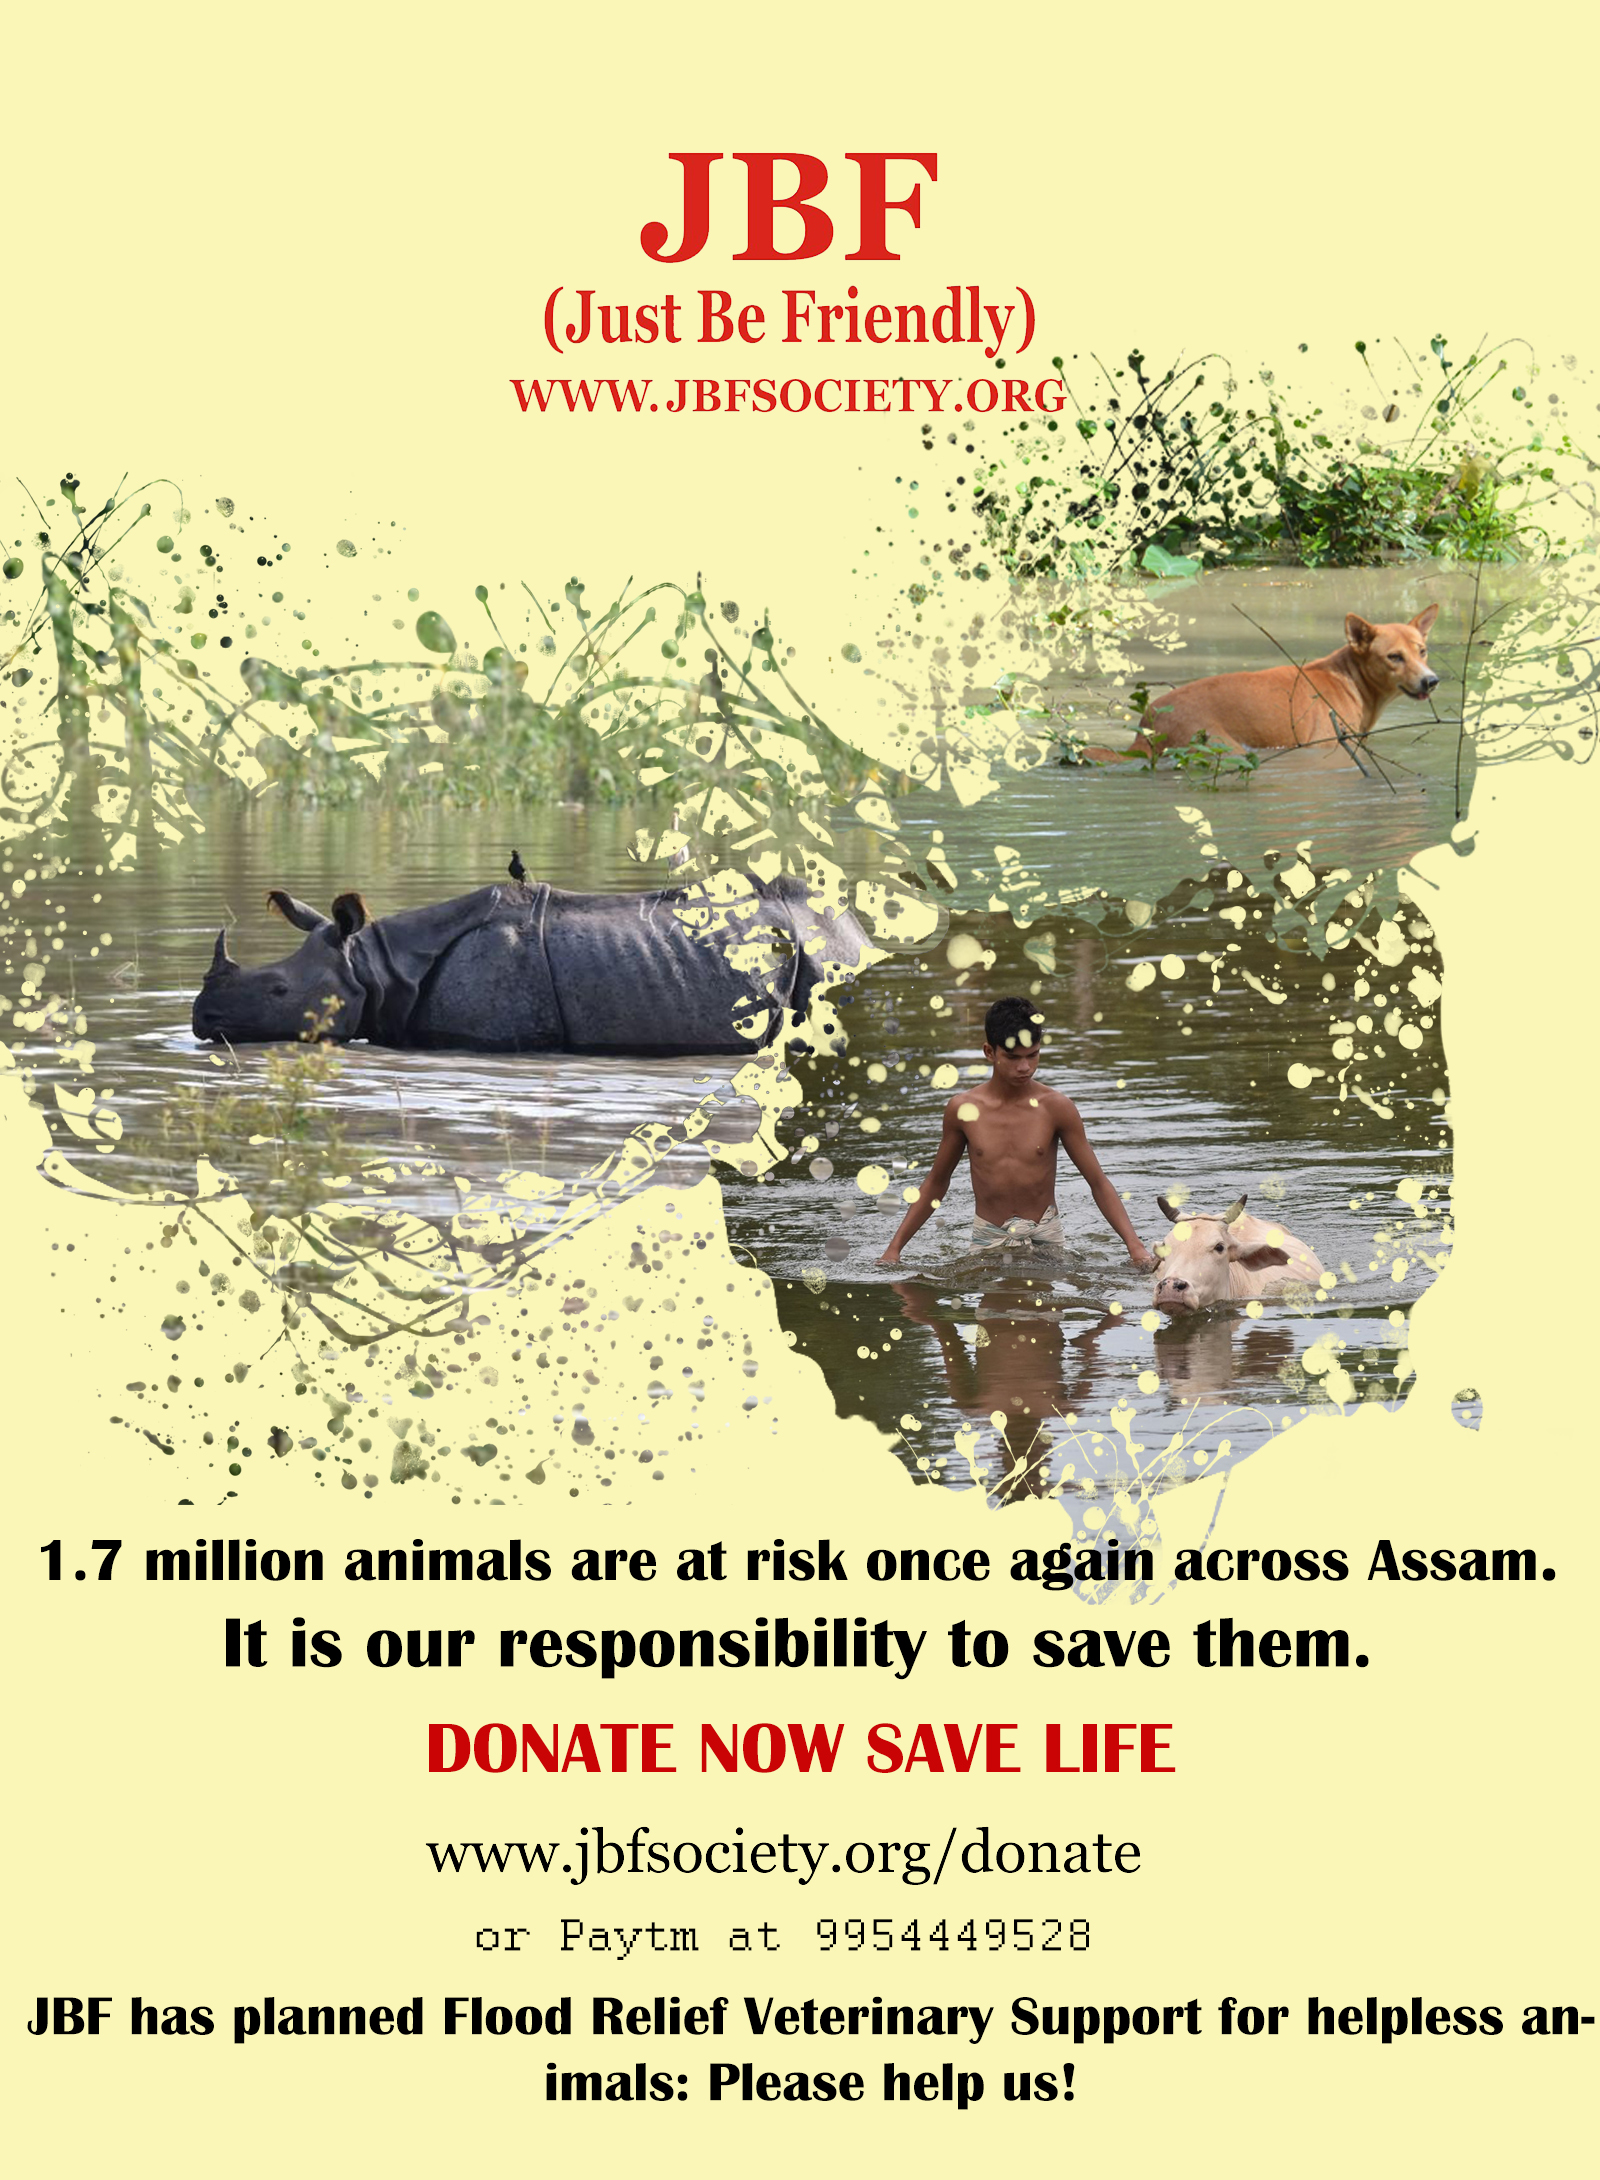 Our responsibility to save the suffering animals: More than 1 7